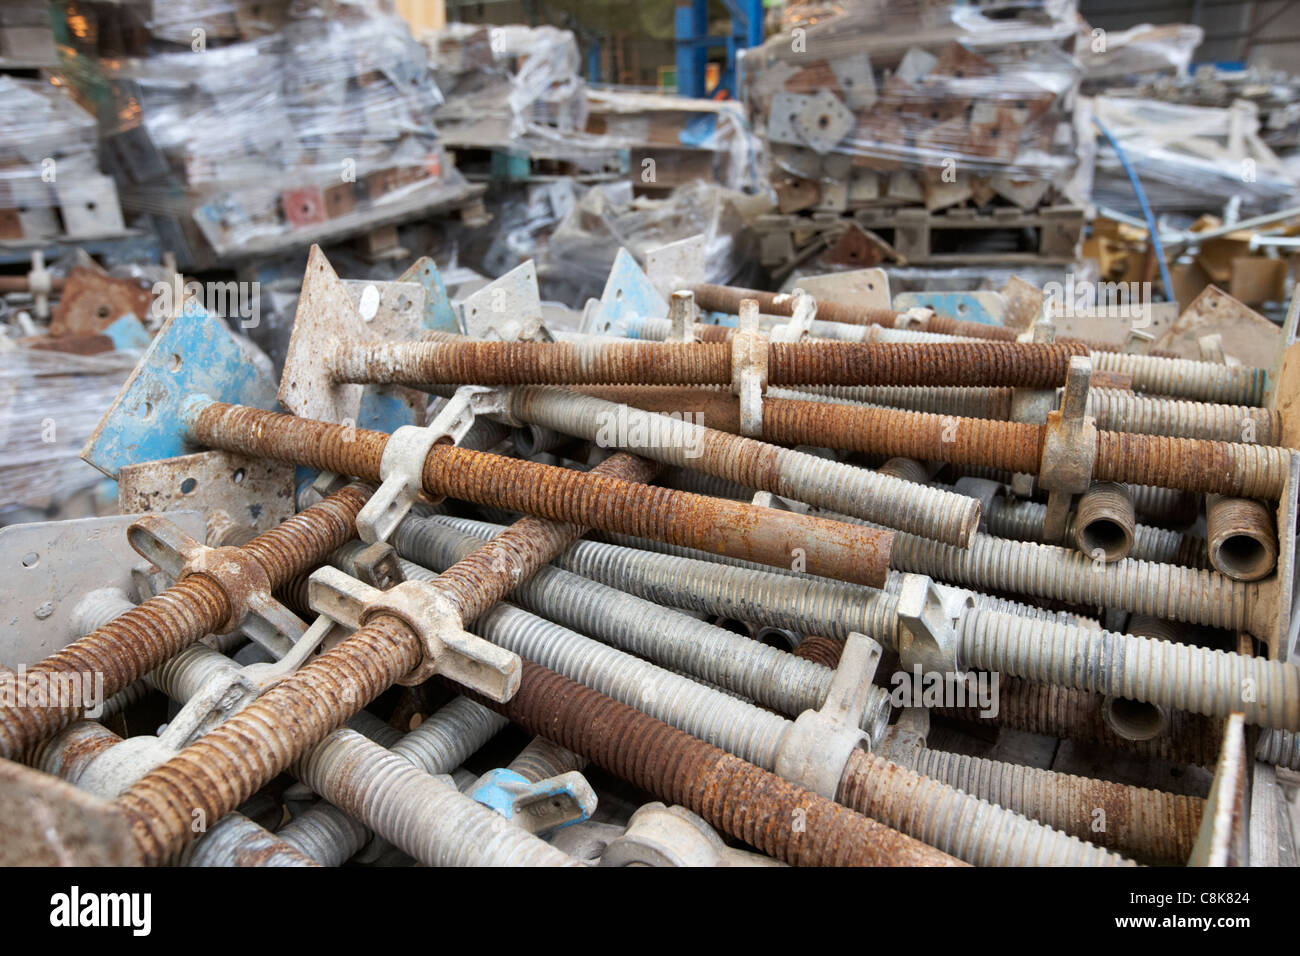 pile of used builders acro props in an old factory warehouse unit belfast northern ireland uk. - Stock Image